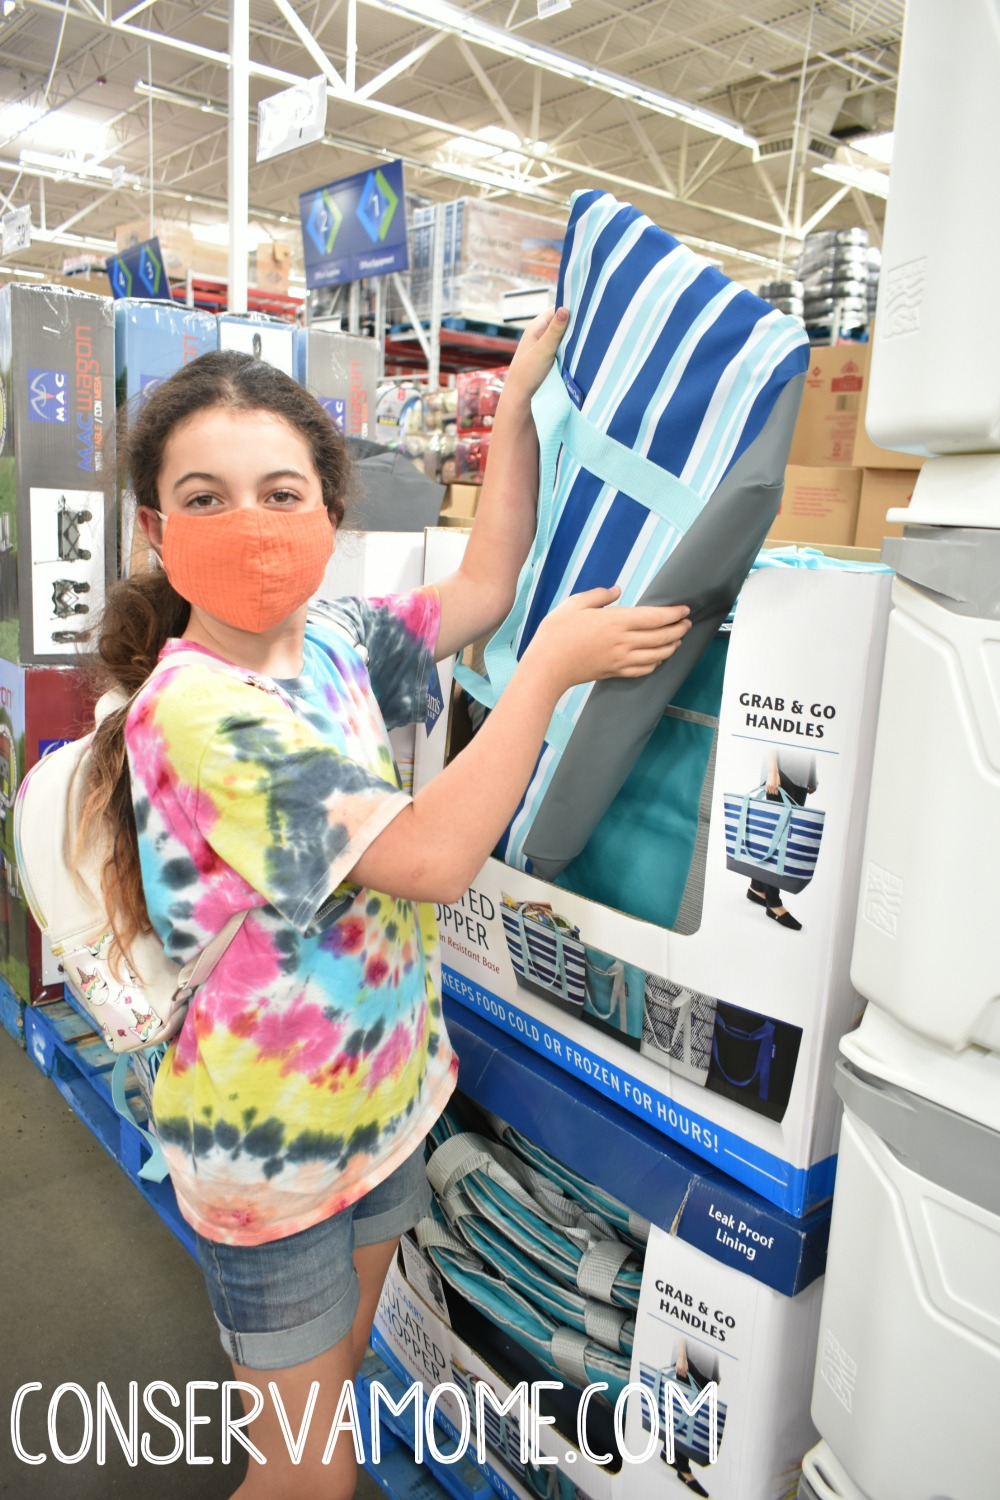 Fill your freezer with fun at Sam's Club